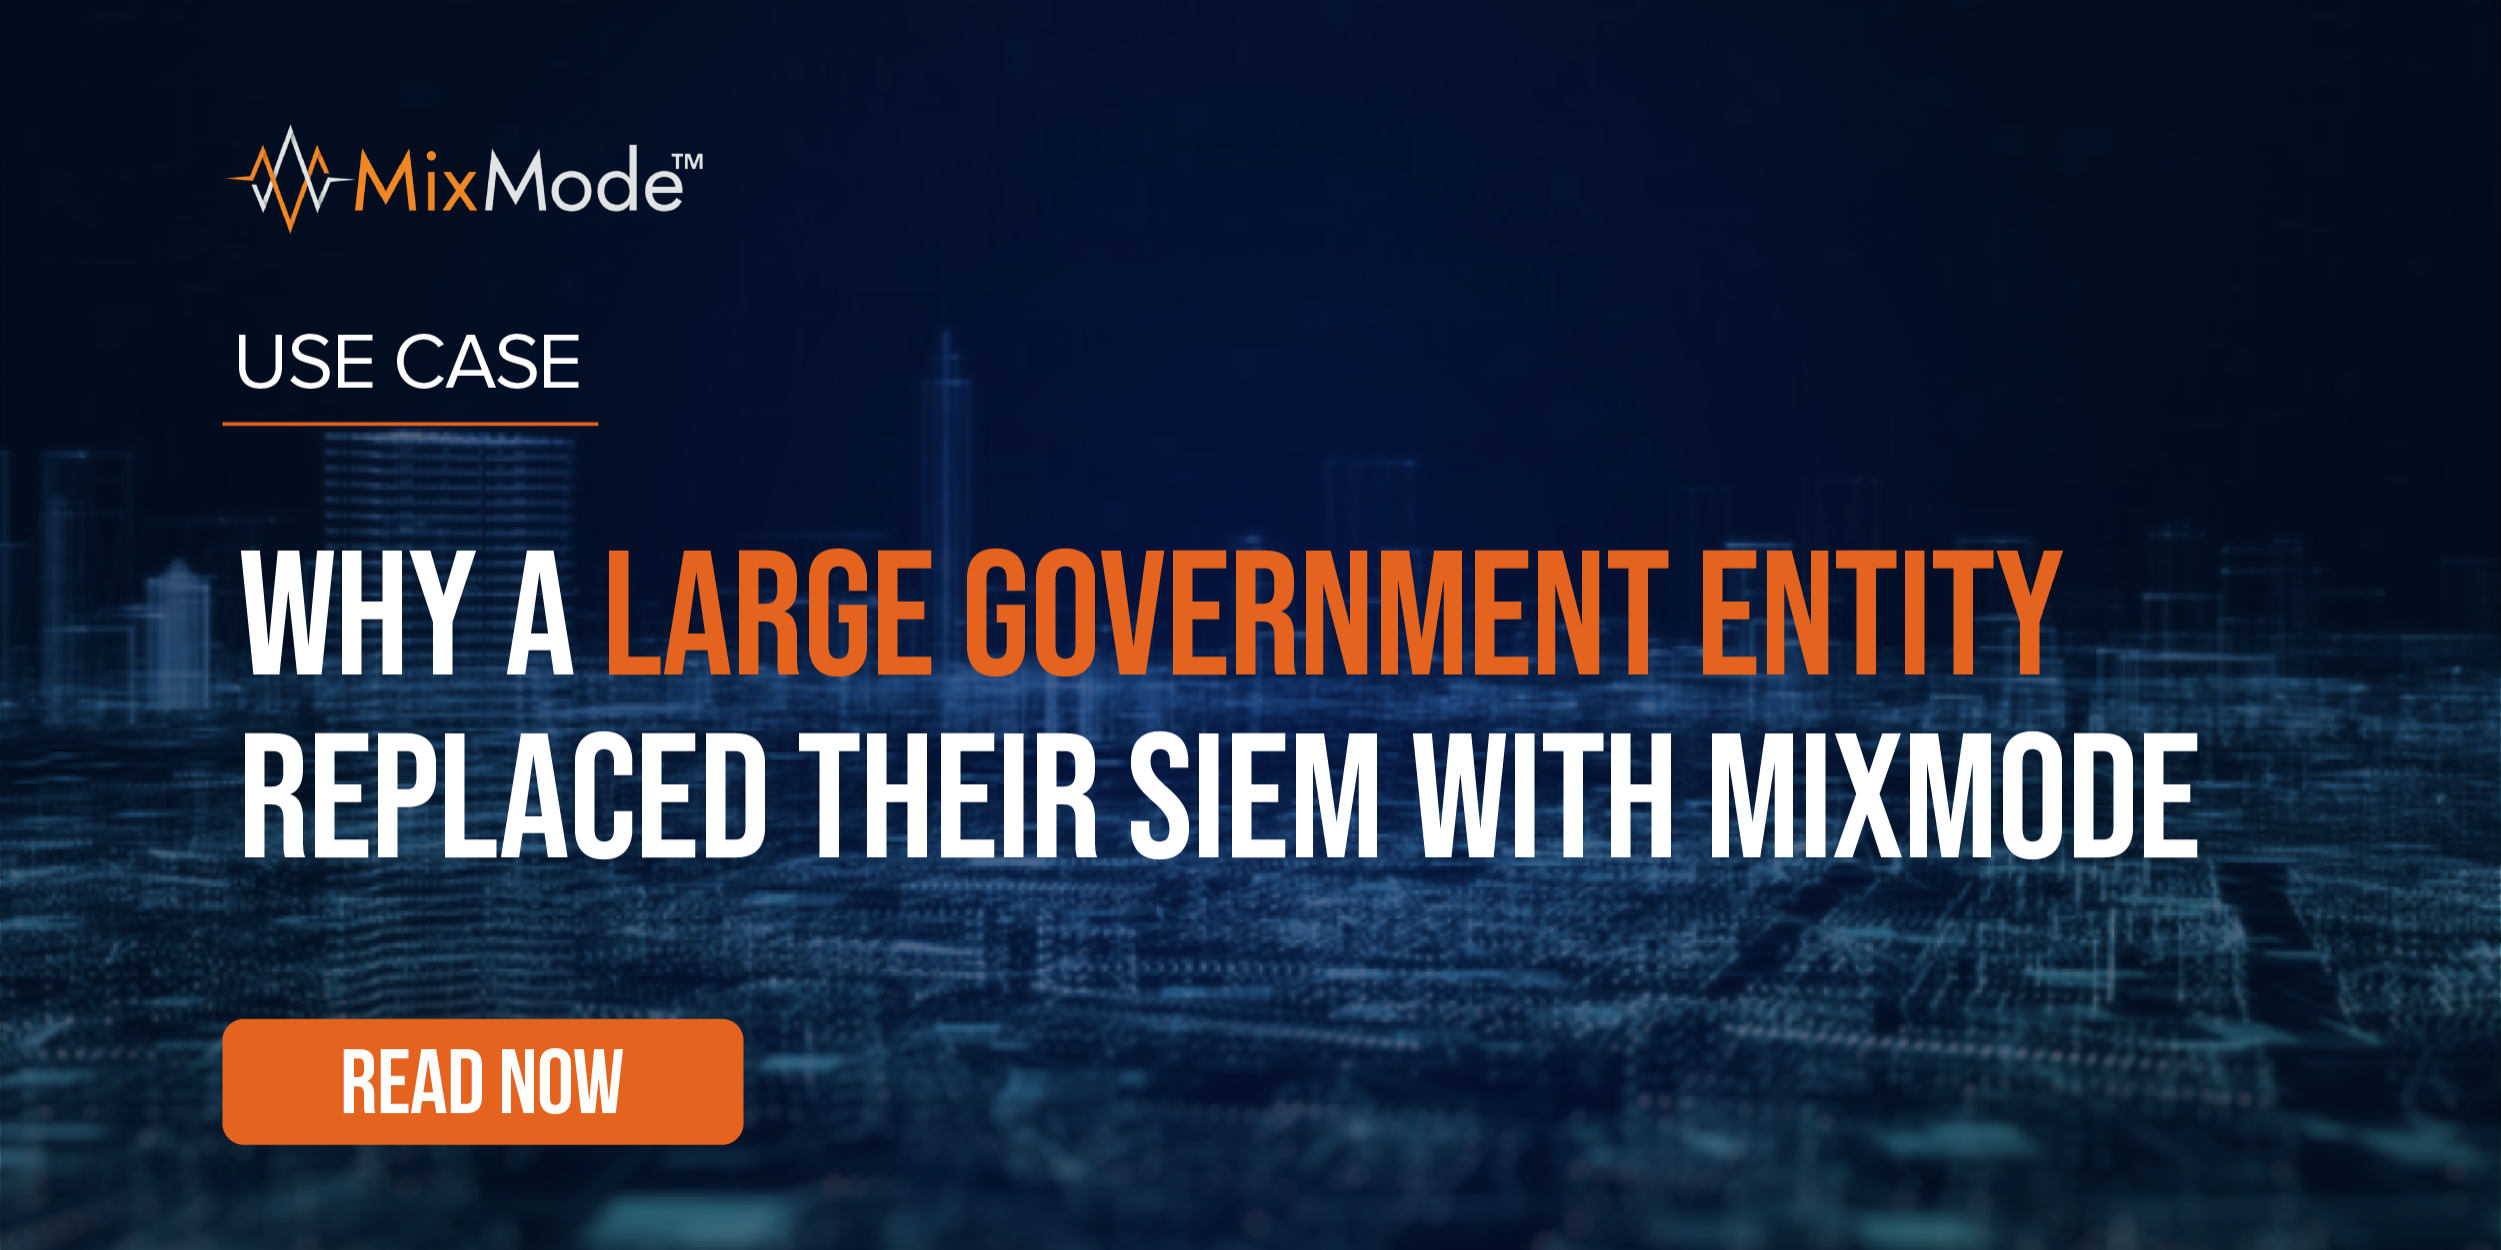 MixMode-Use Case-Why a Large Government Entity Replaced Their SIEM with MixMode-19